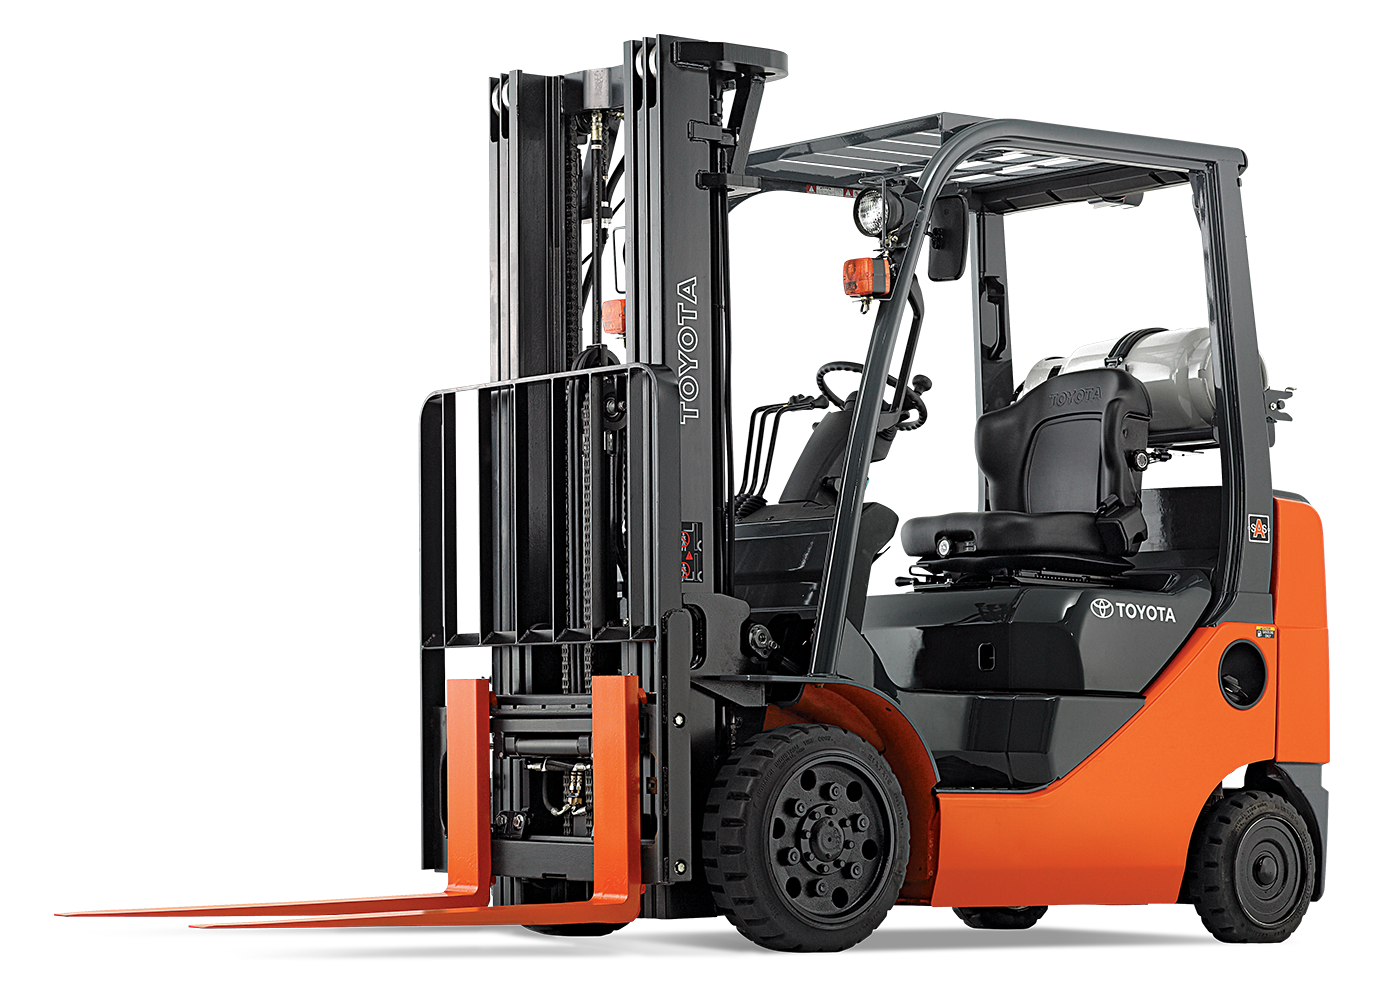 Orange Forklift Truck